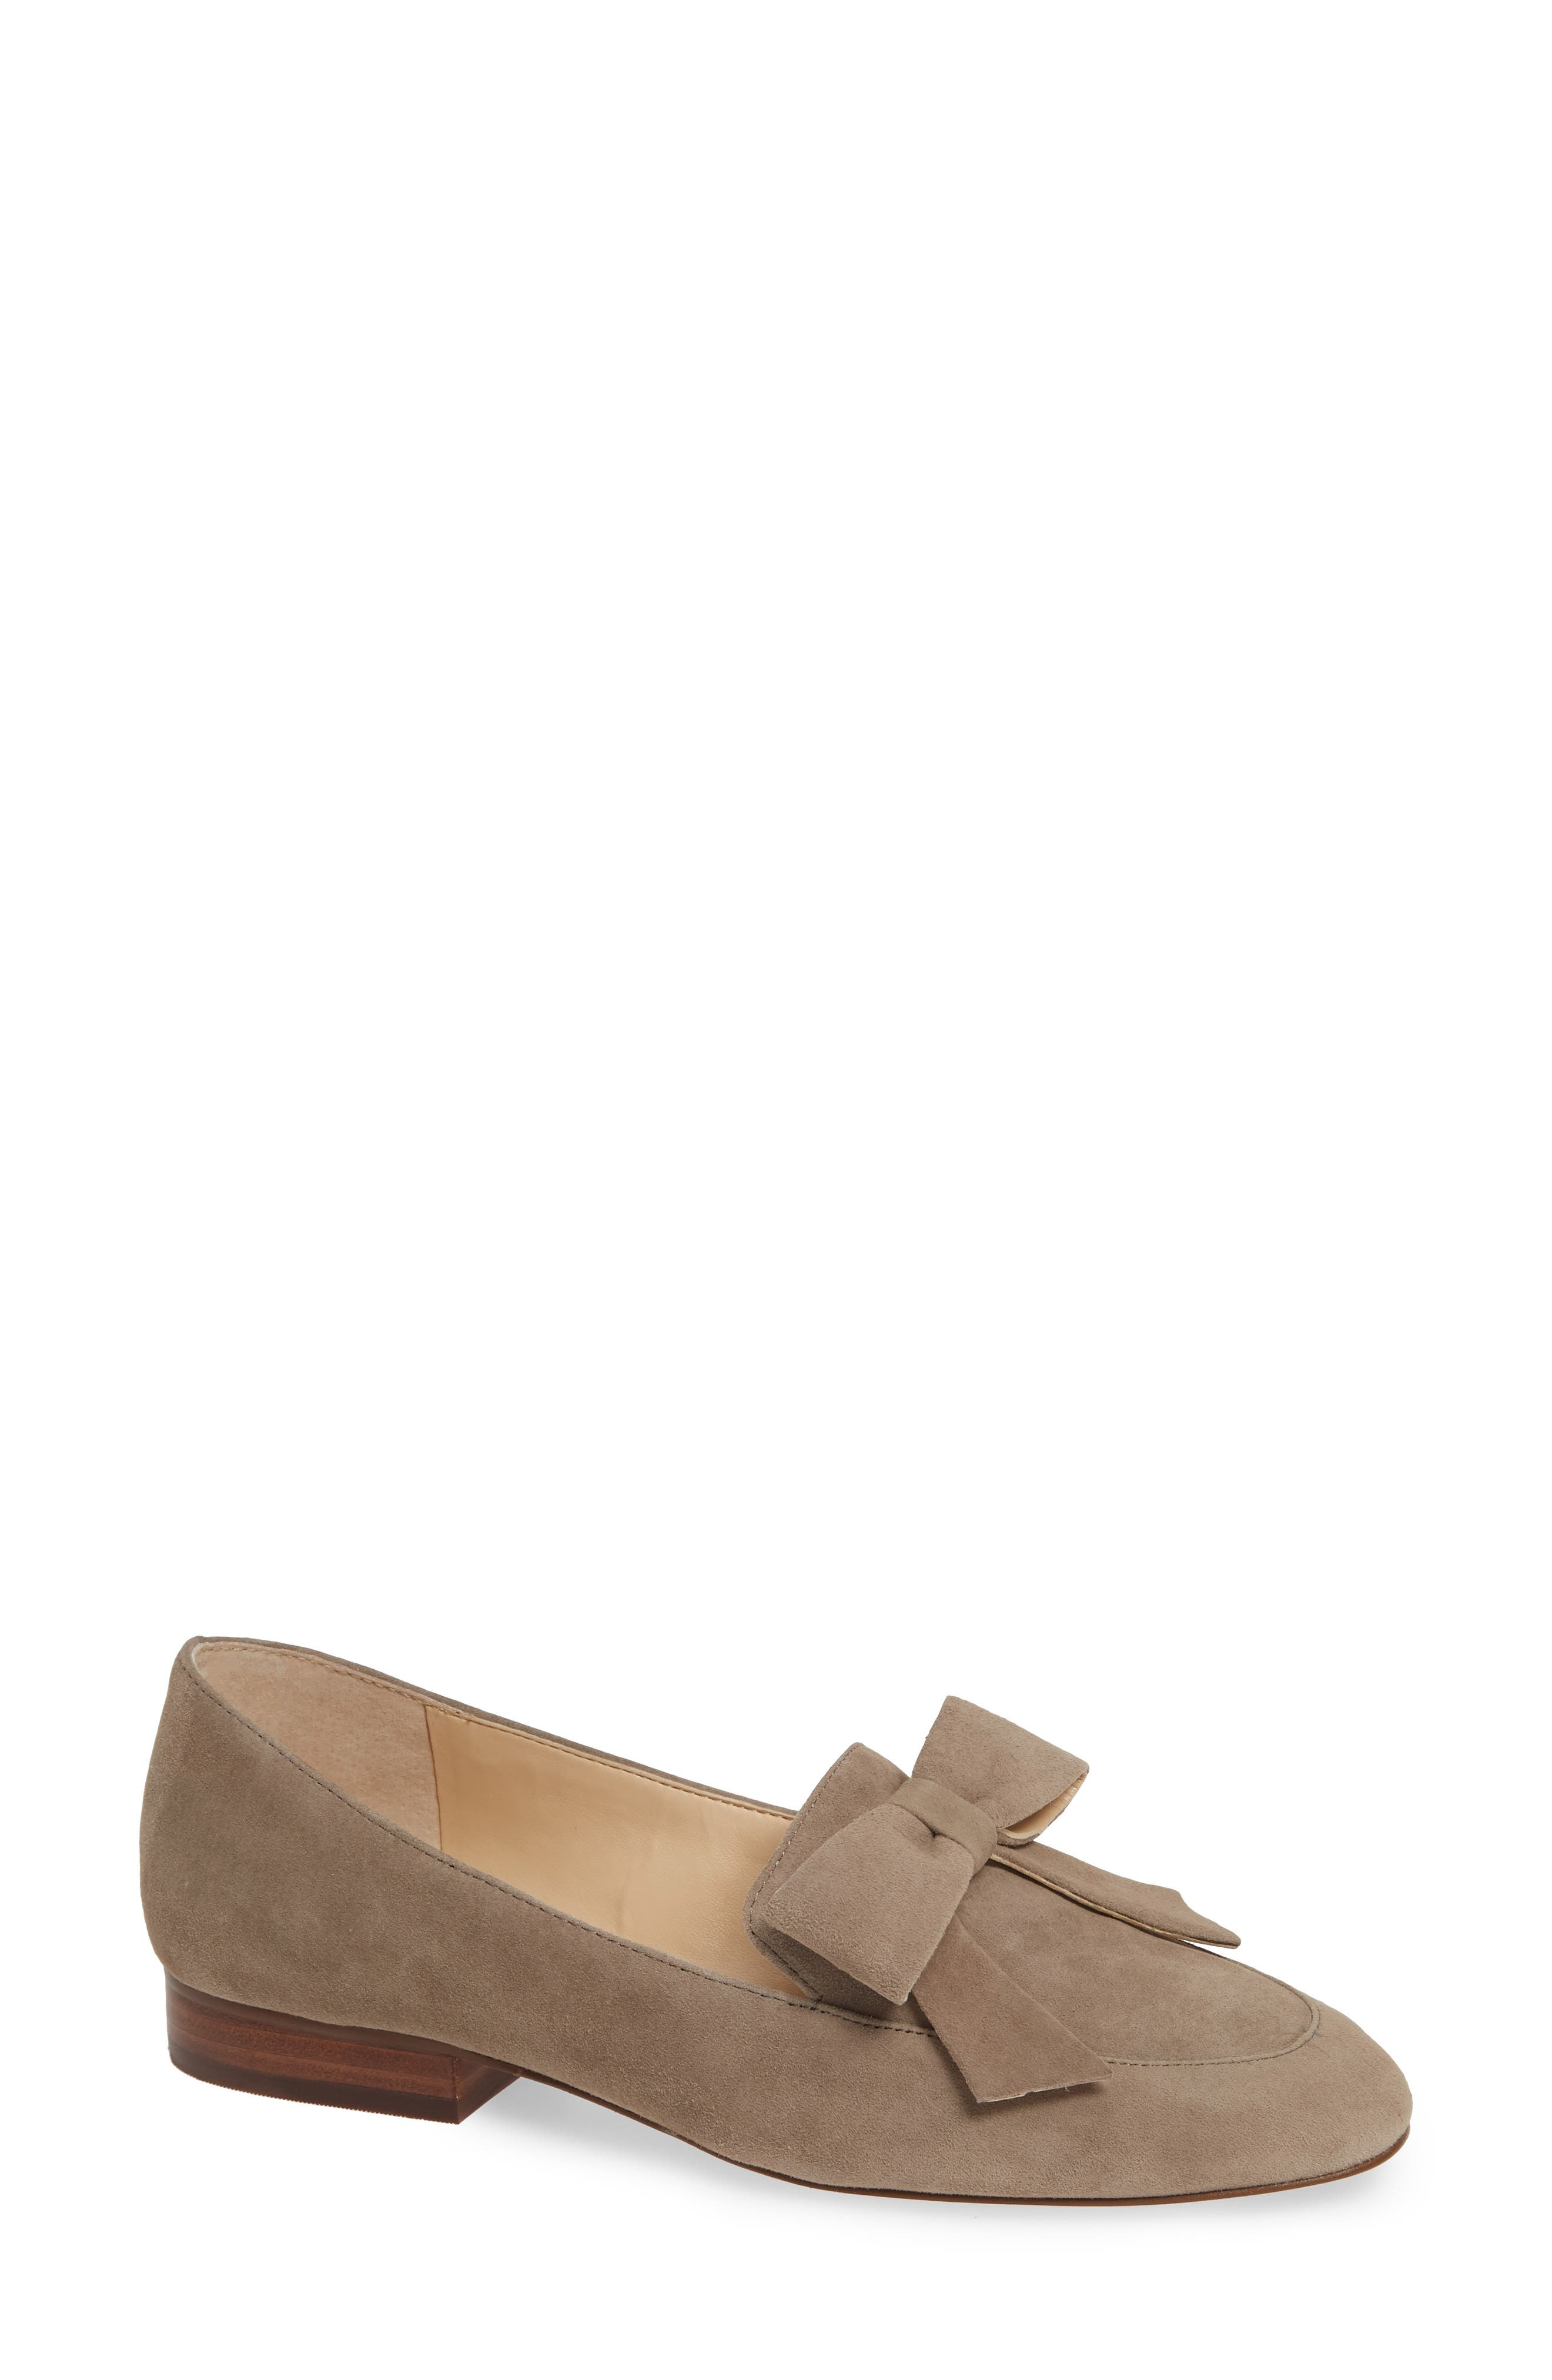 SOLE SOCIETY Tannse Bow Loafer, Main, color, MUSHROOM SUEDE